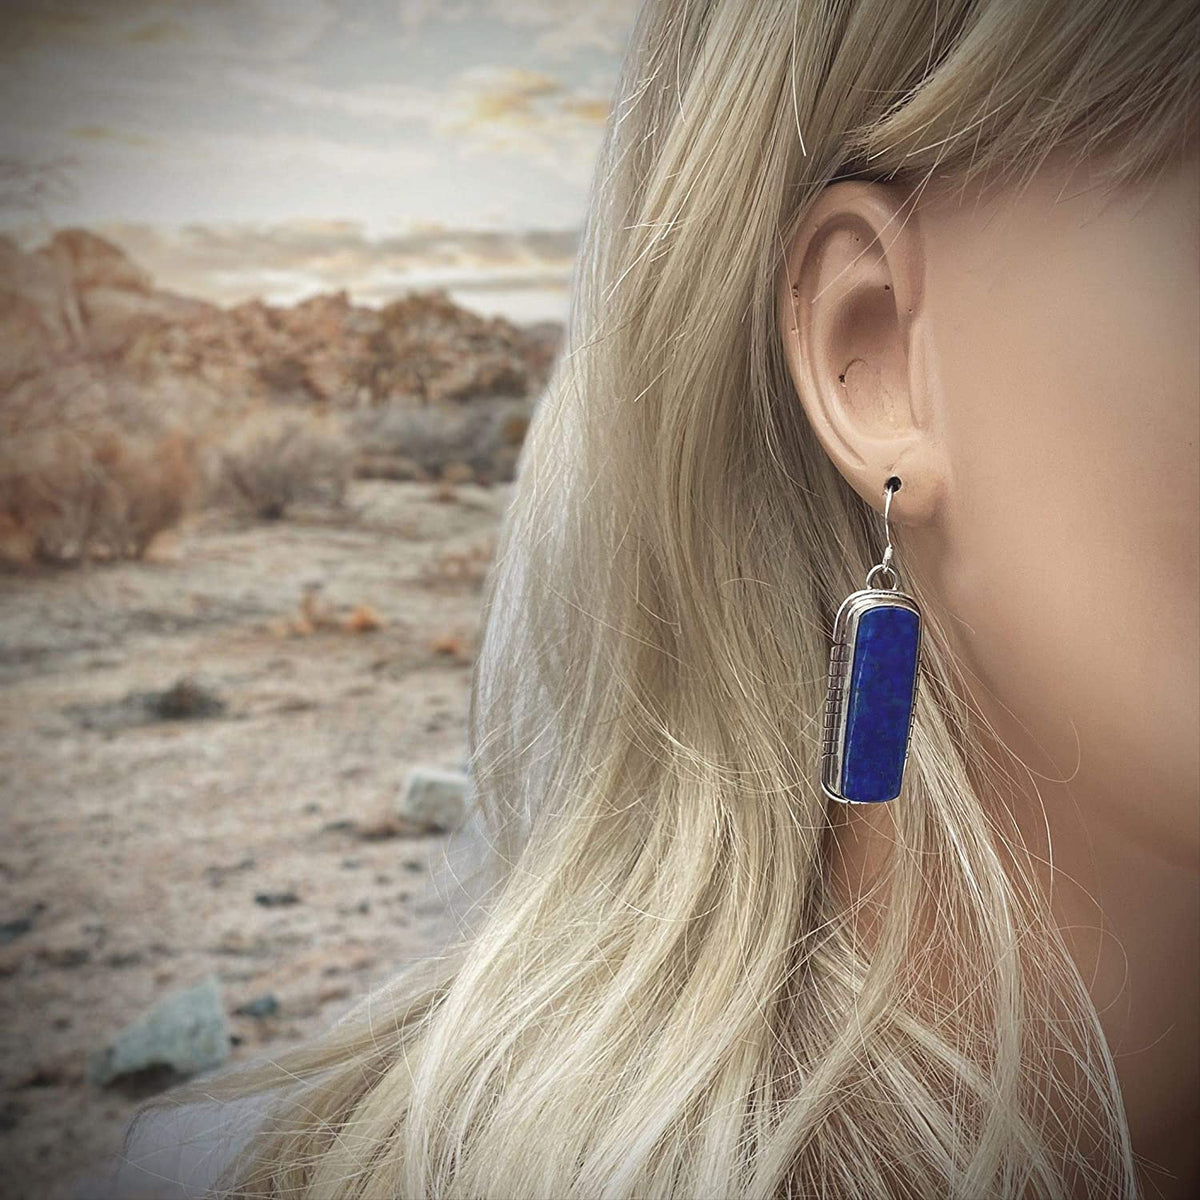 Genuine Lapis Lazuli Statement Earrings, 925 Sterling Silver, Native American USA Handmade, Artisan Signed, Nickel Free, Navy Blue, French Hook